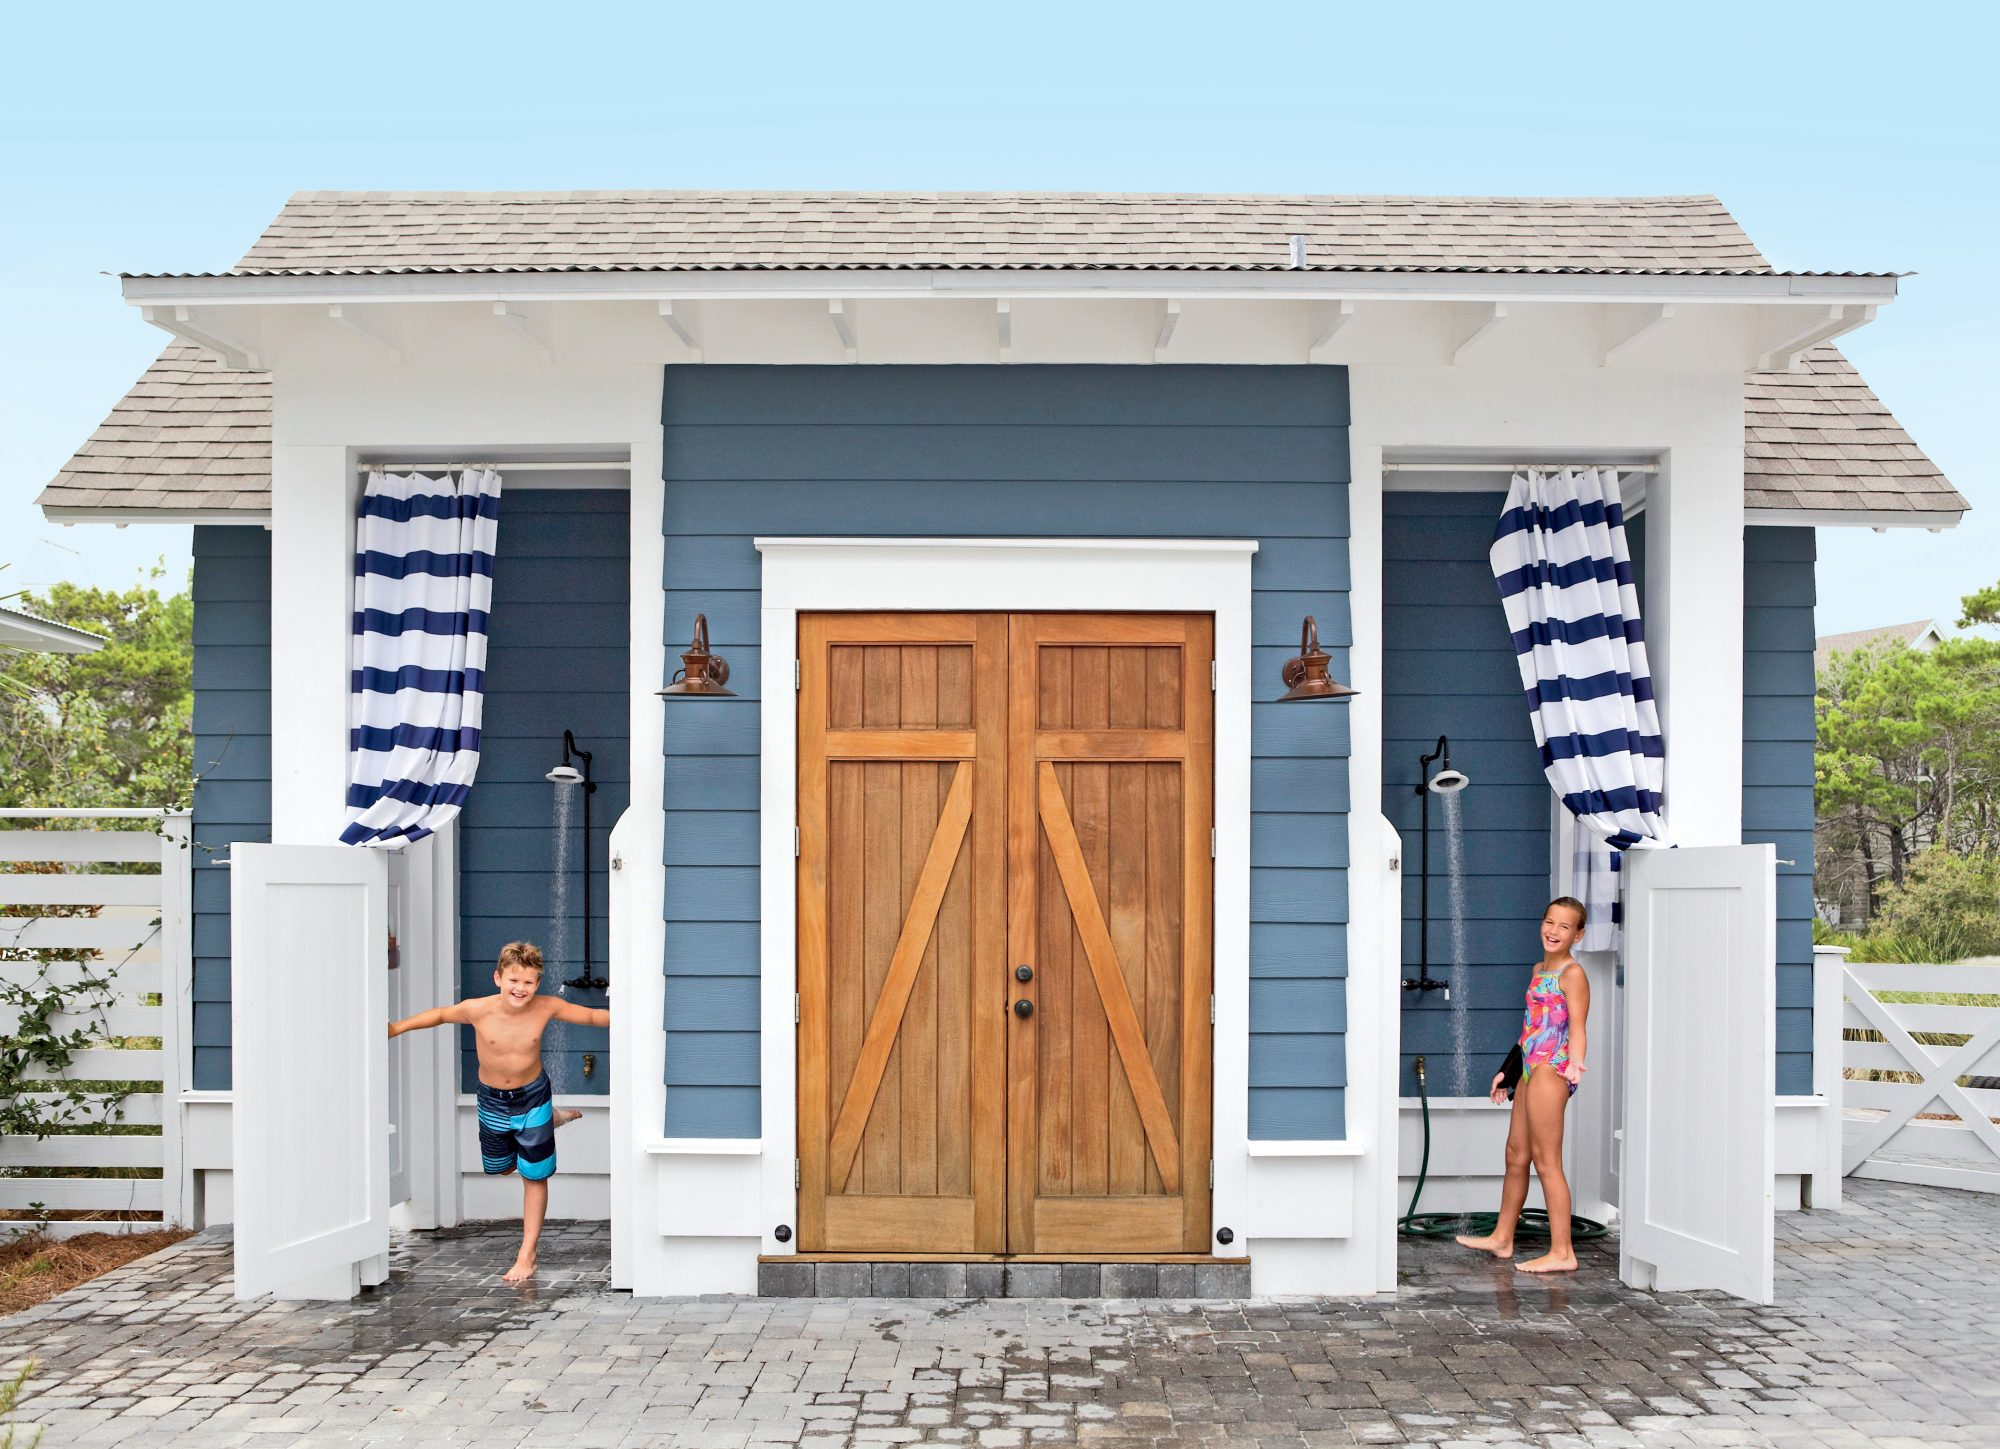 Alongside the driveway of this Watersound, Florida, beach house, a pair of outdoor showers flank a bonus laundry room that's perfect for washing sandy suits and towels. We love the striped curtains, blue siding, sky-high ceilings, swinging saloon-style do